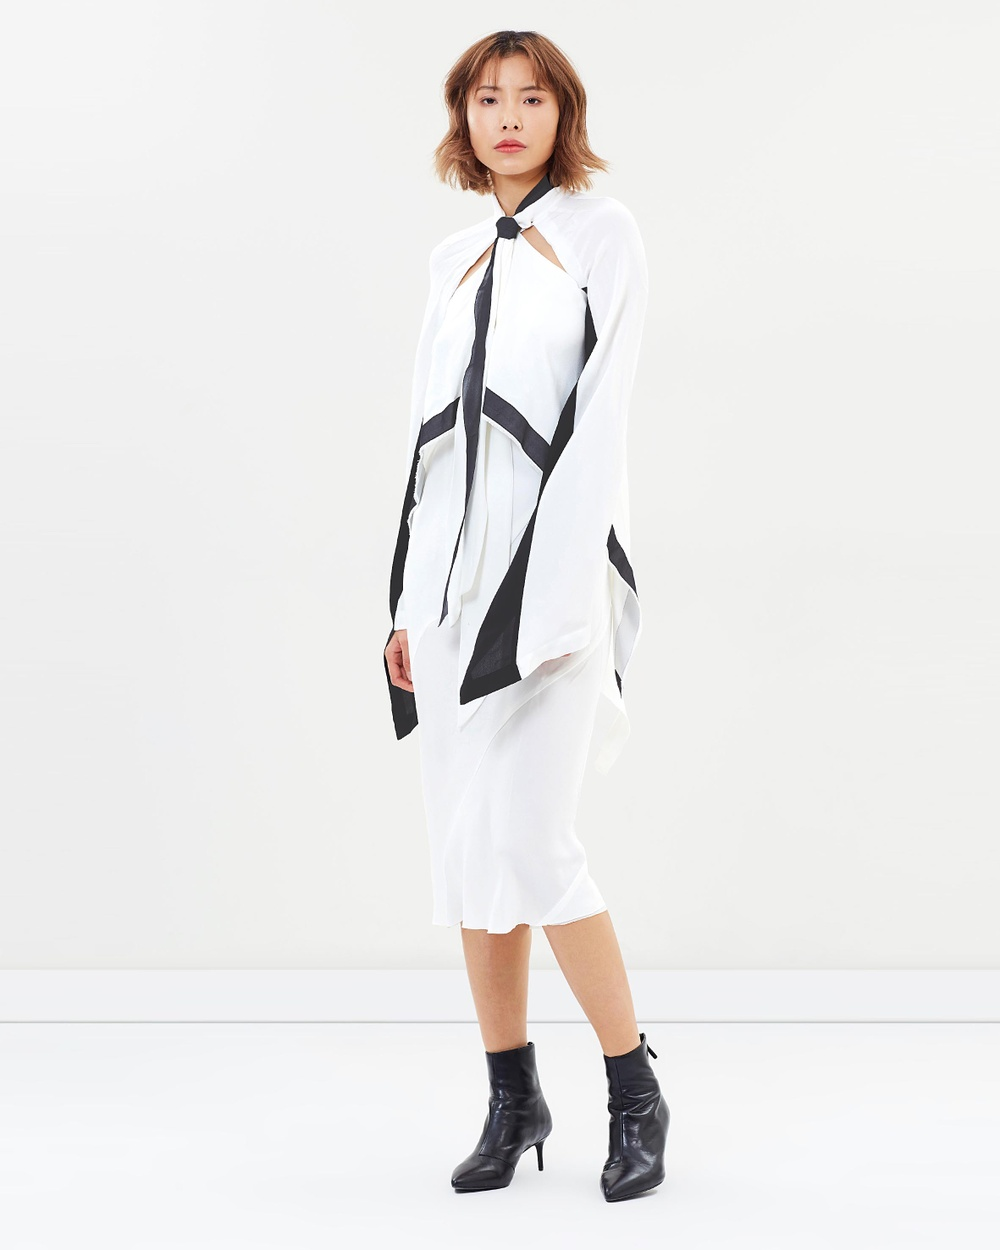 KITX Yin Yang Knot Dress Dresses White & Black Yin Yang Knot Dress